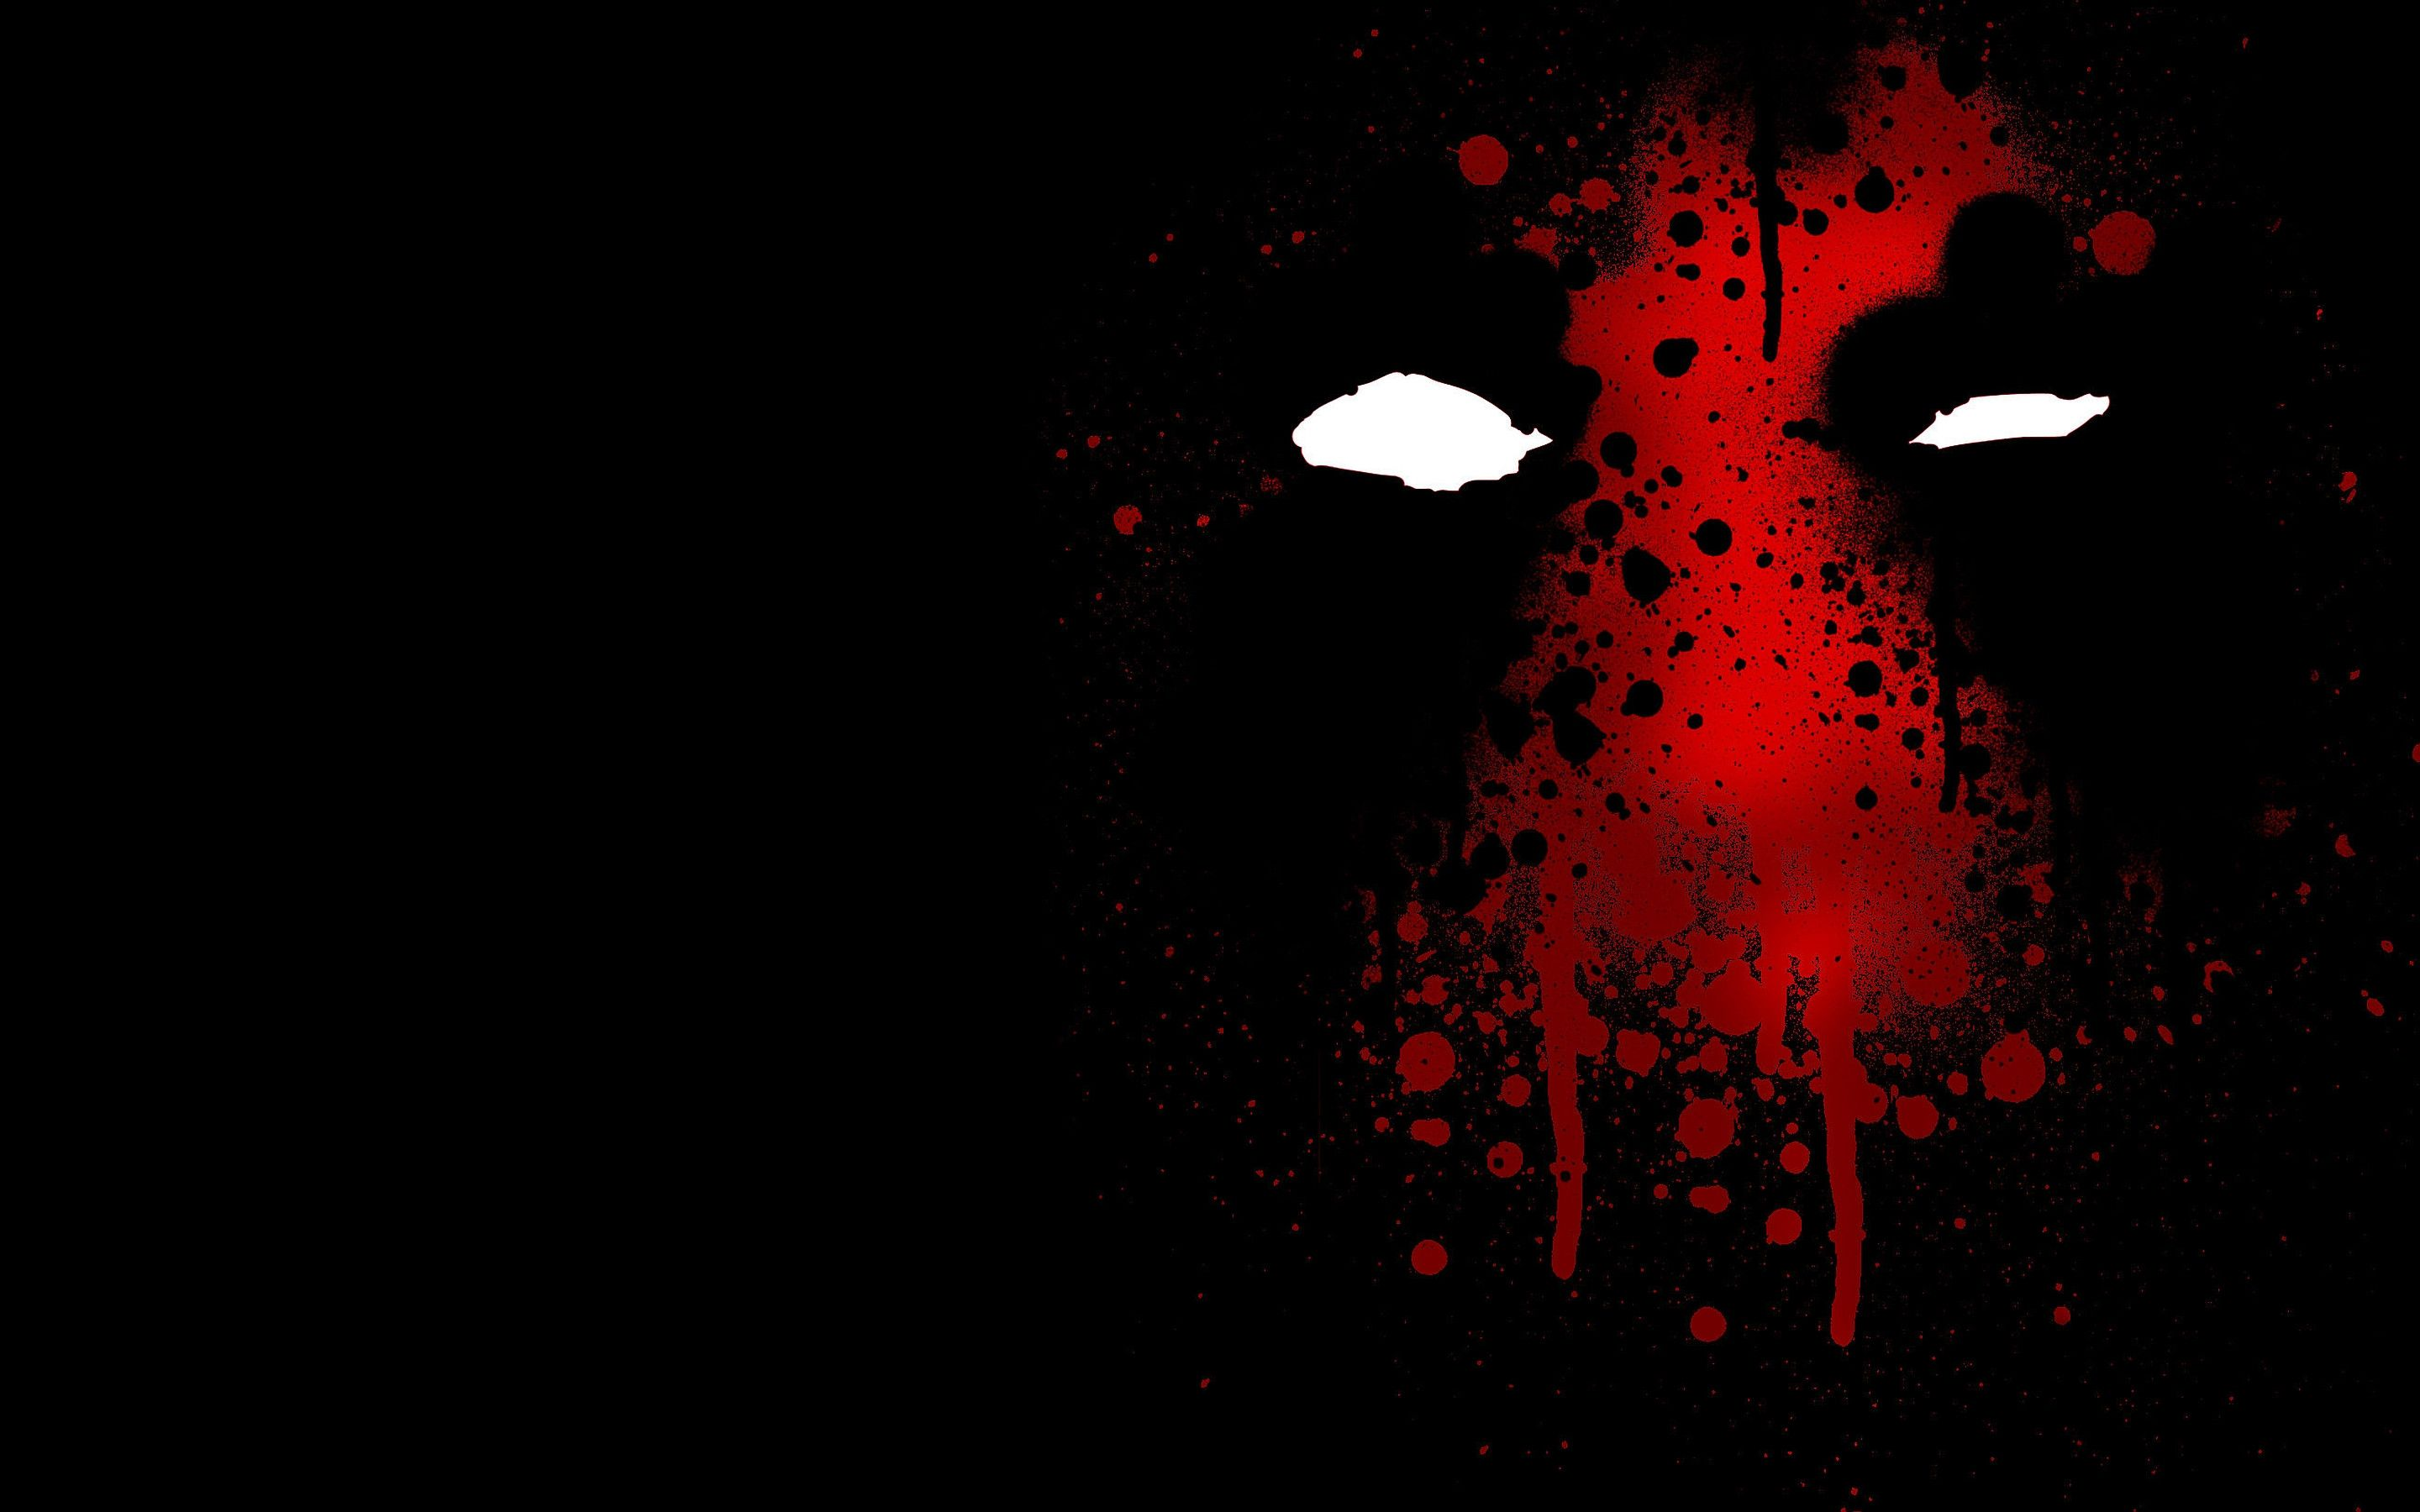 Deadpool Wallpapers For iPhone & iPad